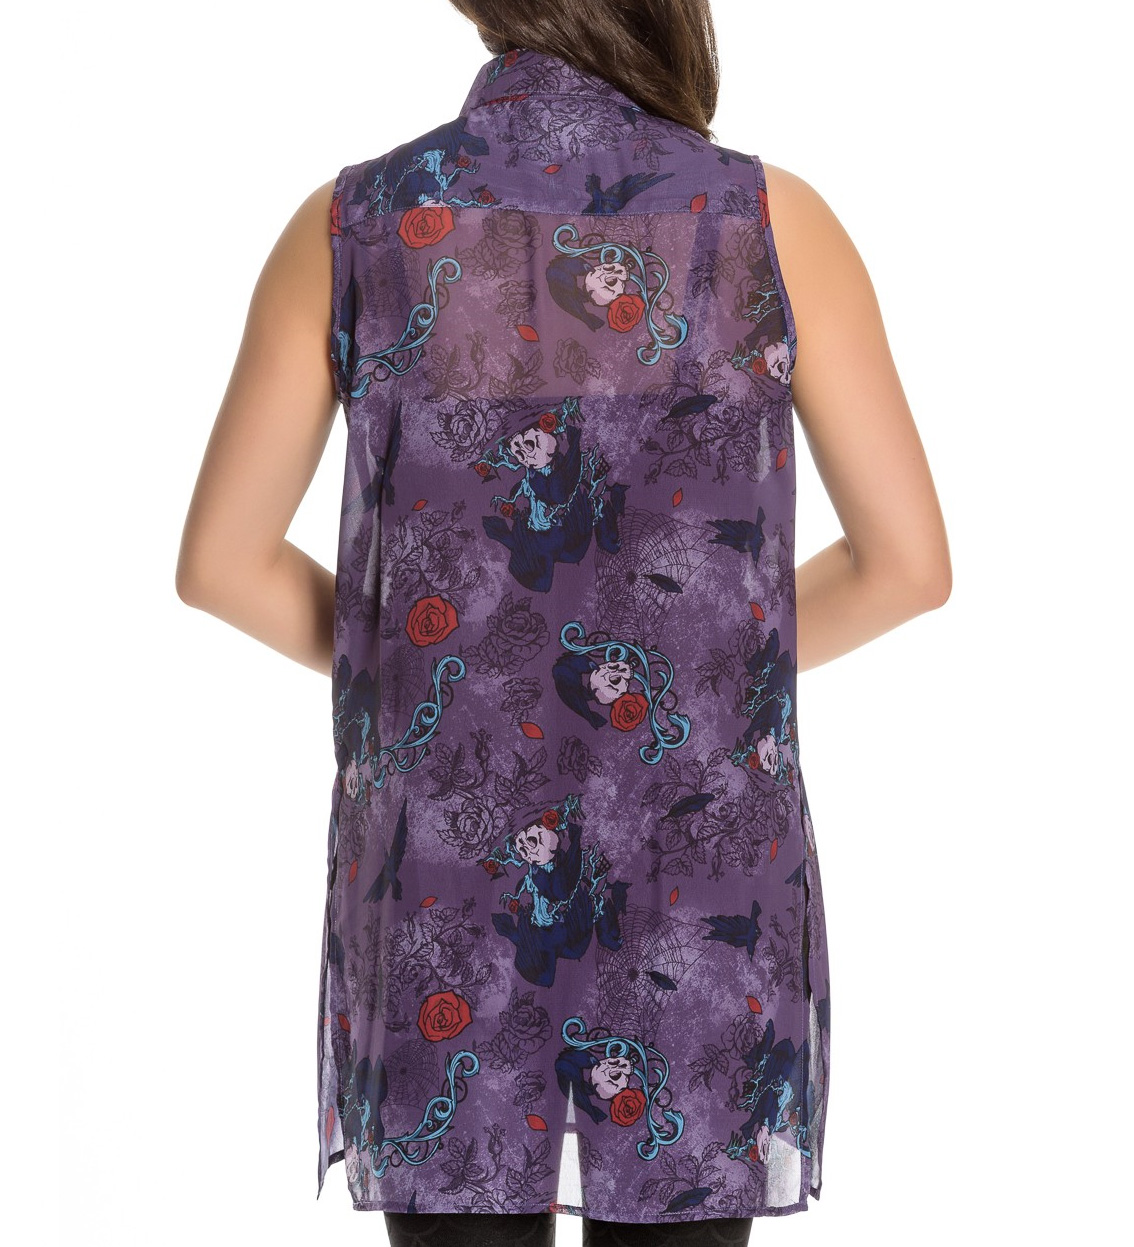 Hell-Bunny-Shirt-Top-Goth-Punk-Roses-Skulls-RAVEN-Purple-Blouse-All-Sizes thumbnail 13